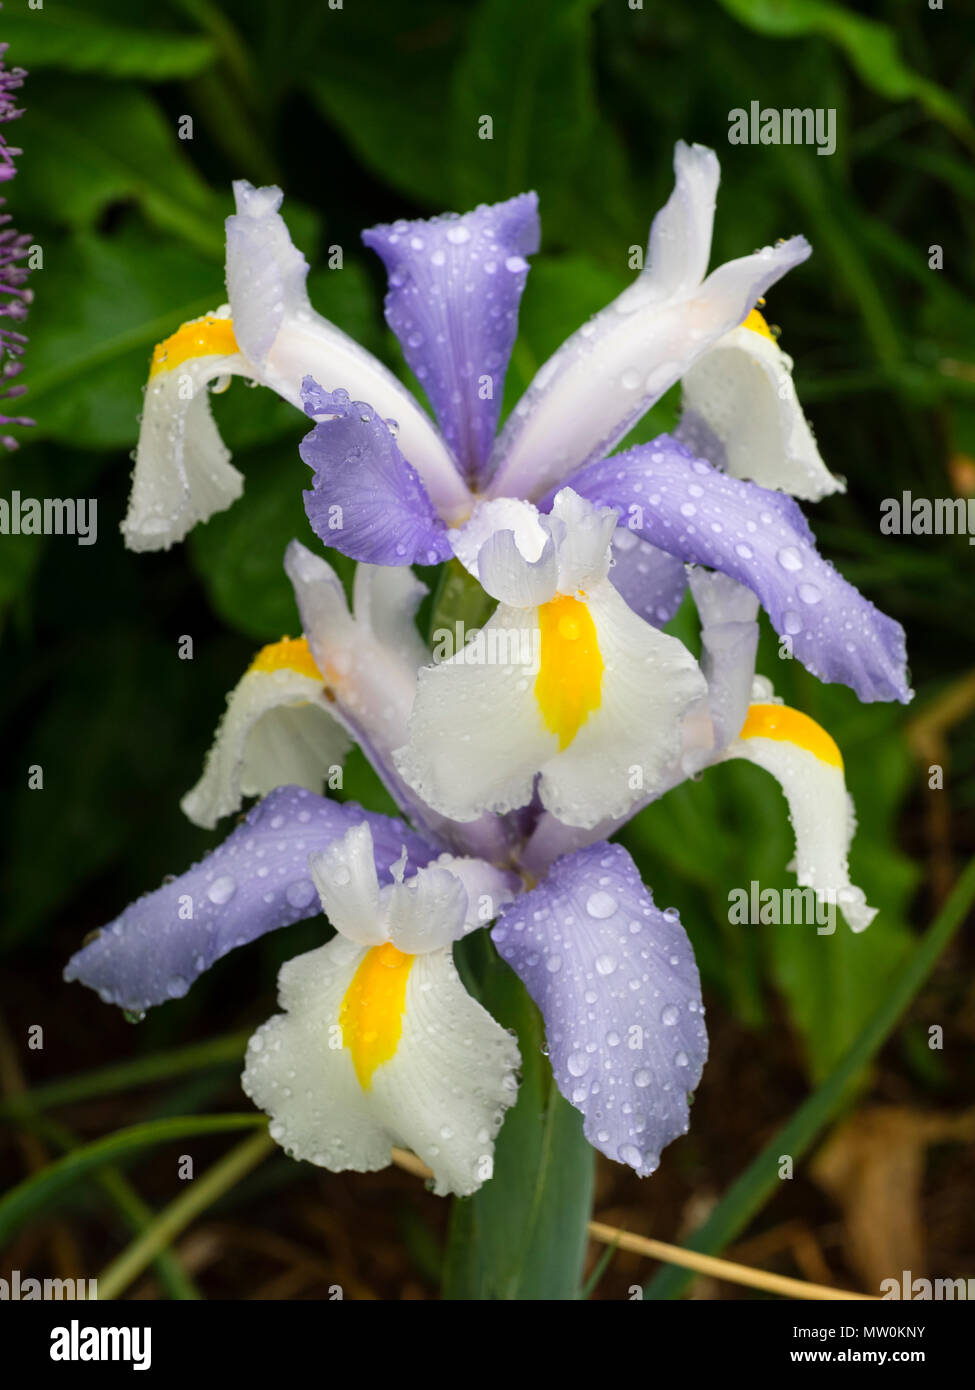 White falls and pale blue standards of the early summer flowering dutch iris, Iris x hollandica 'Silvery Beauty' - Stock Image